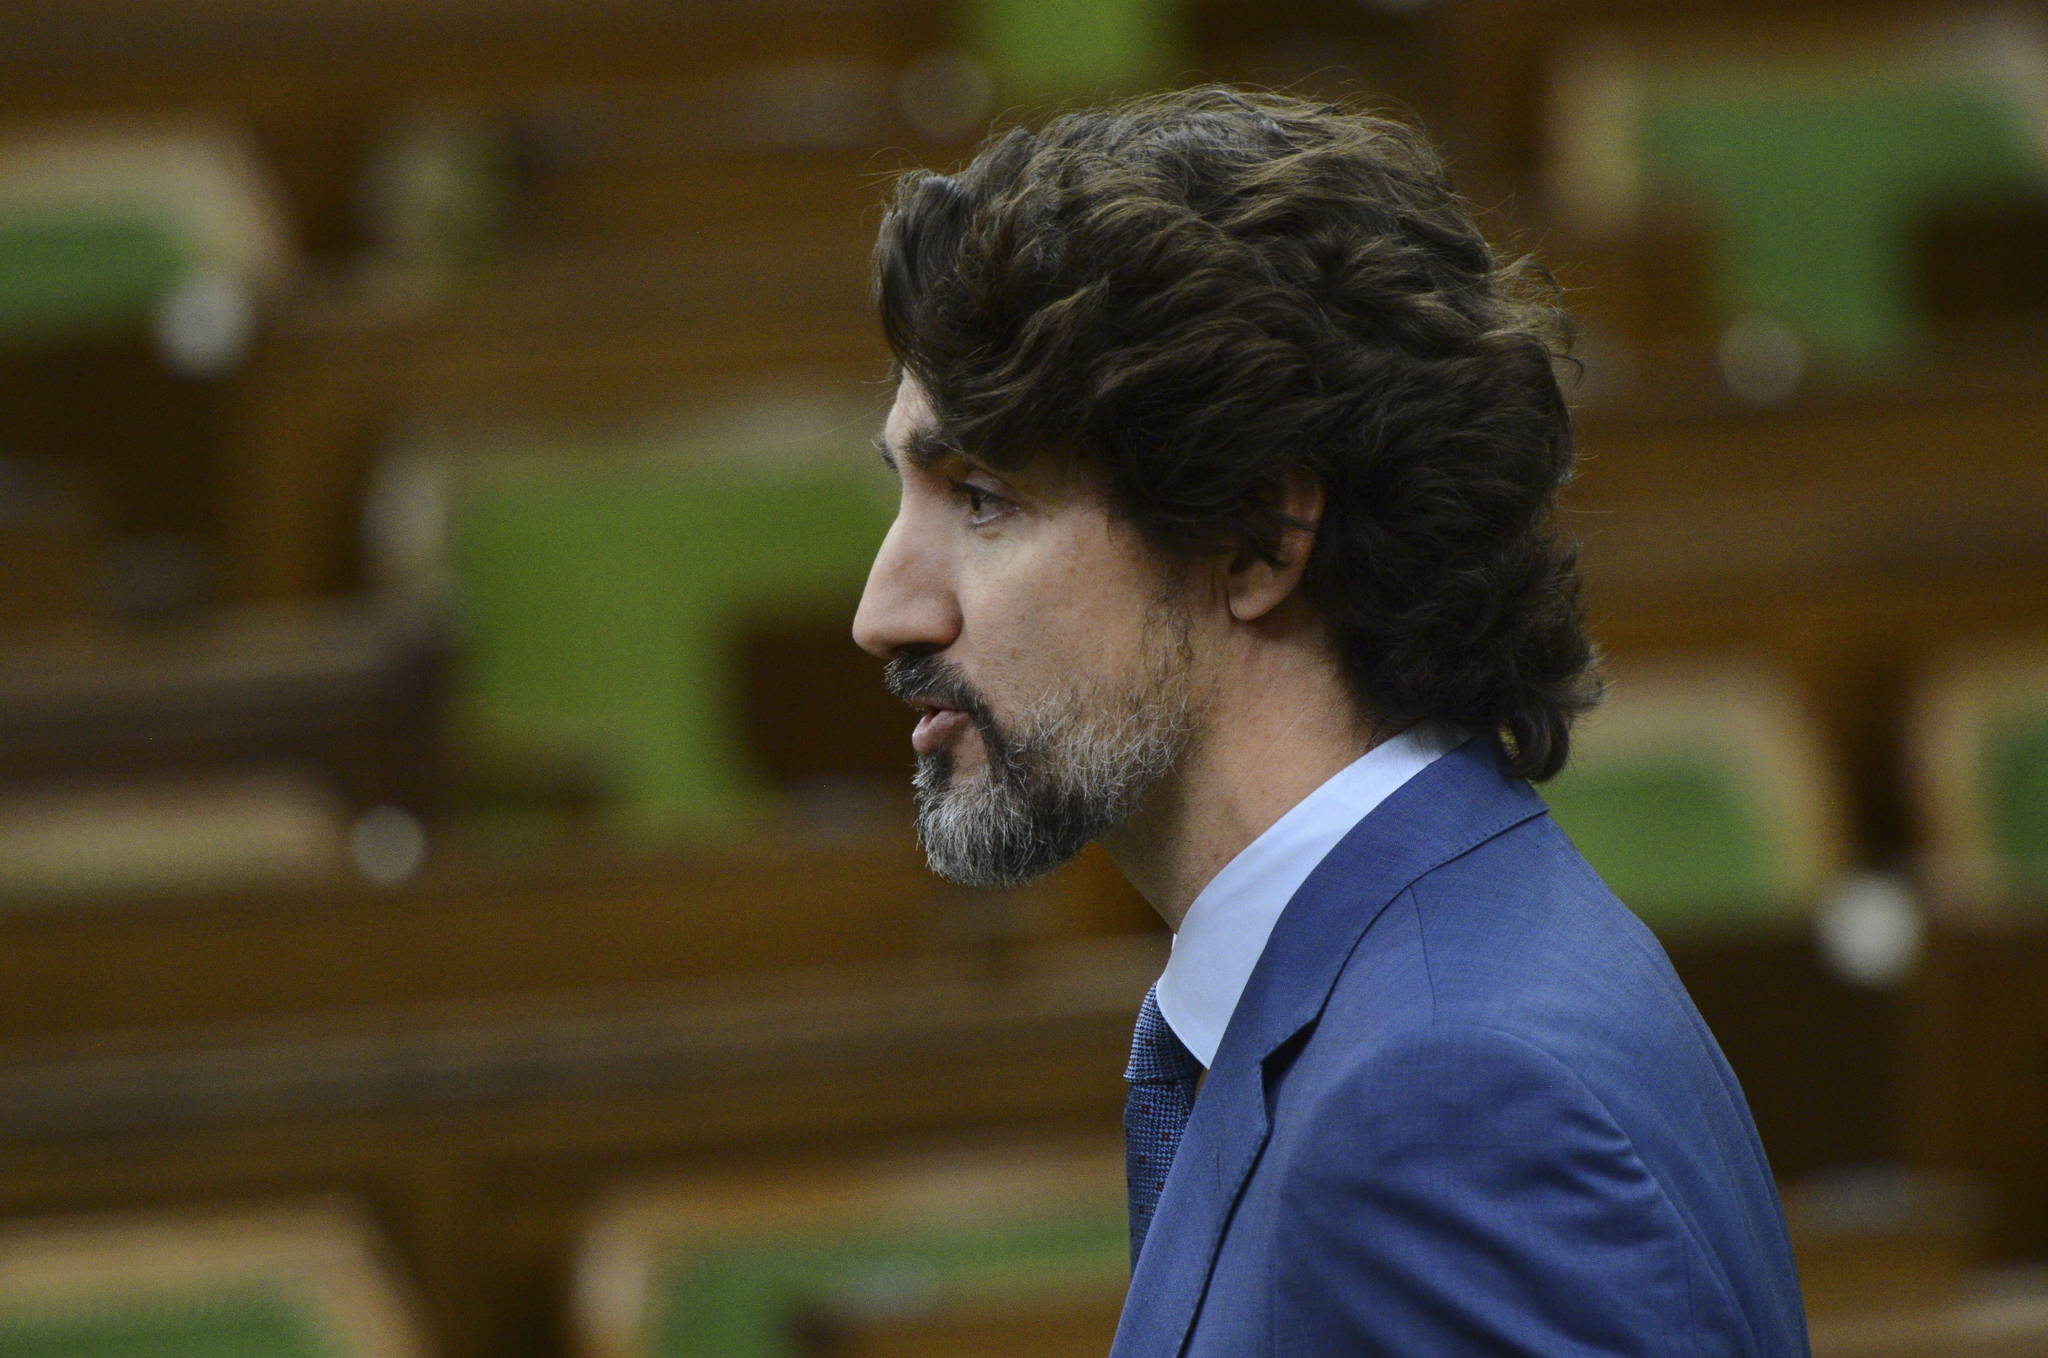 Prime Minister Justin Trudeau speaks during the special committee on the COVID-19 pandemic in the House of Commons on Parliament Hill amid the COVID-19 pandemic in Ottawa on Wednesday, June 10, 2020. THE CANADIAN PRESS/Sean Kilpatrick